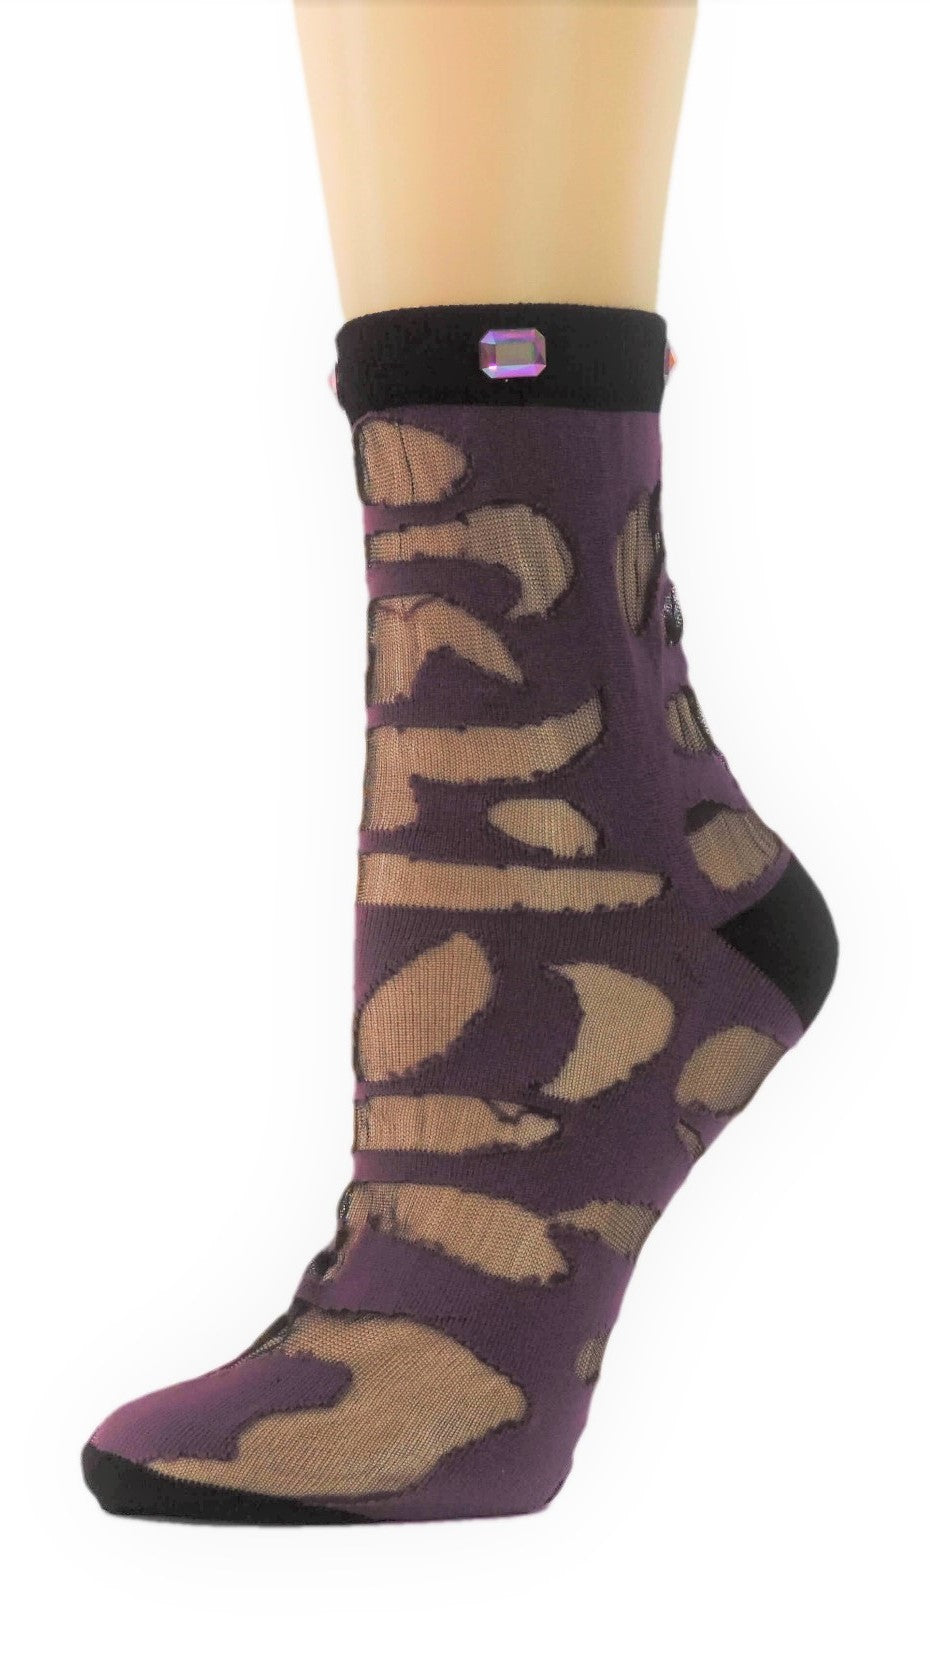 Trendy Custom Sheer Socks with crystals - Global Trendz Fashion®